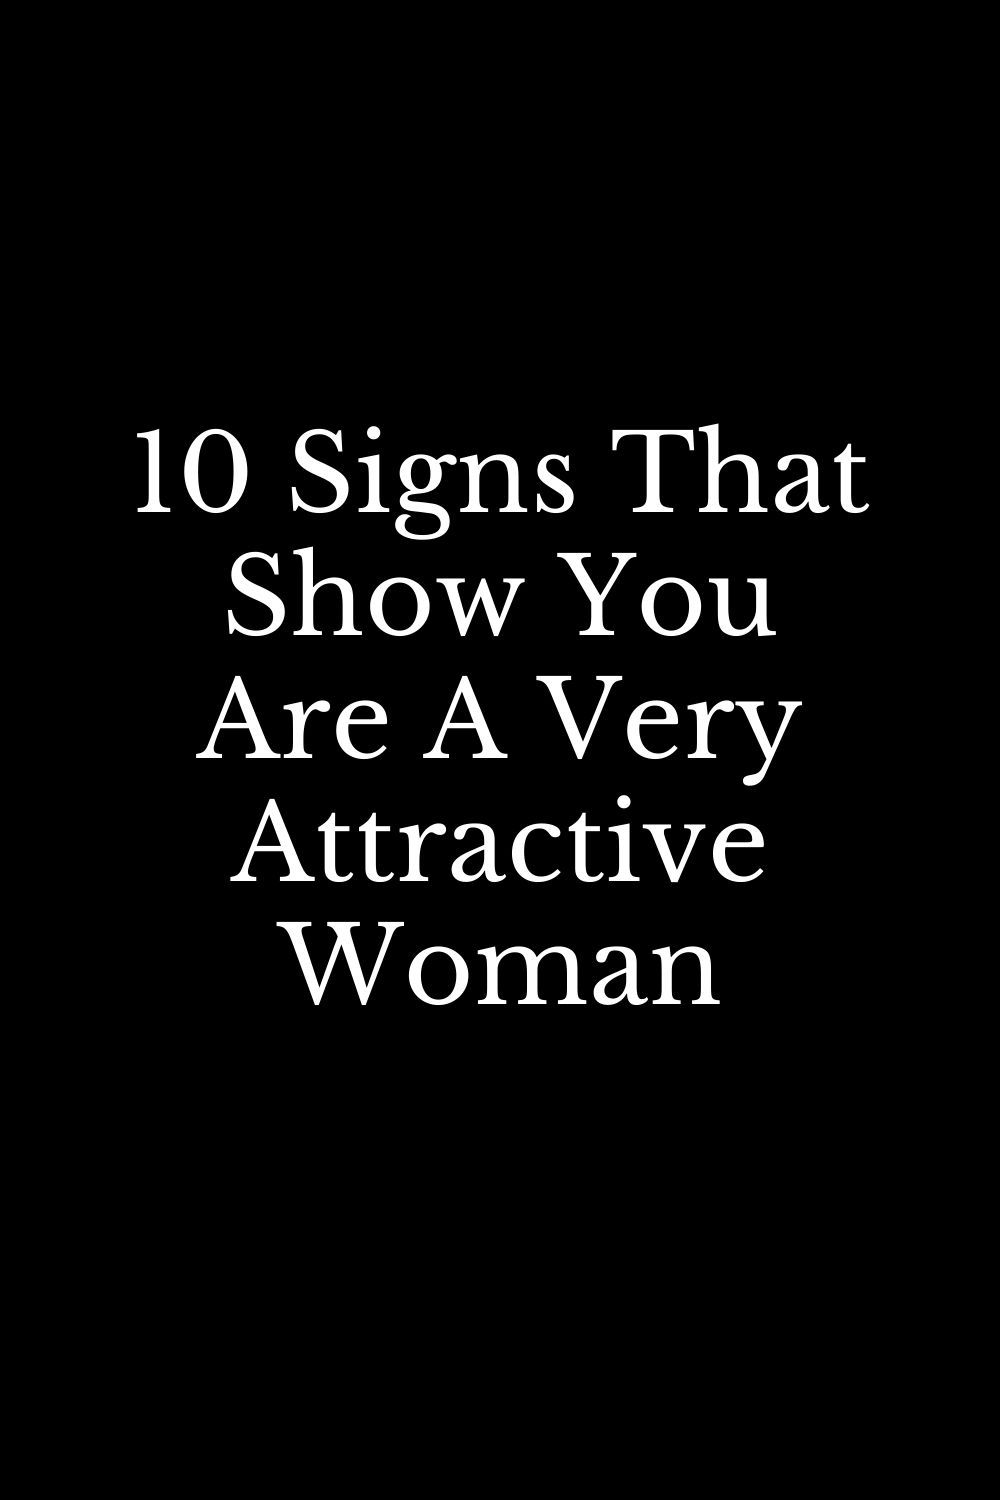 10 Signs That Show You Are A Very Attractive Woman